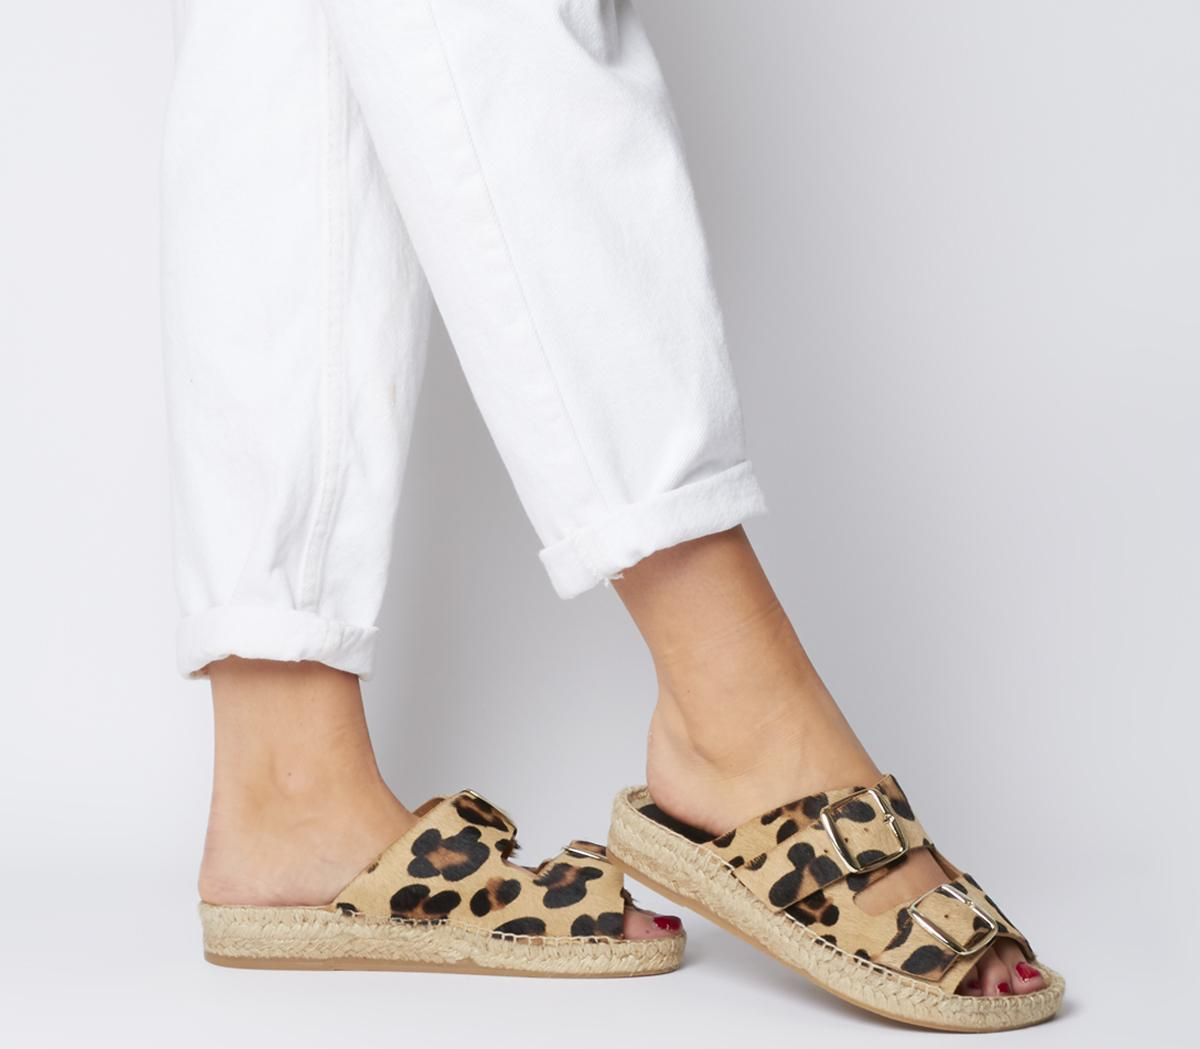 Sollilas Two Strap Sandals